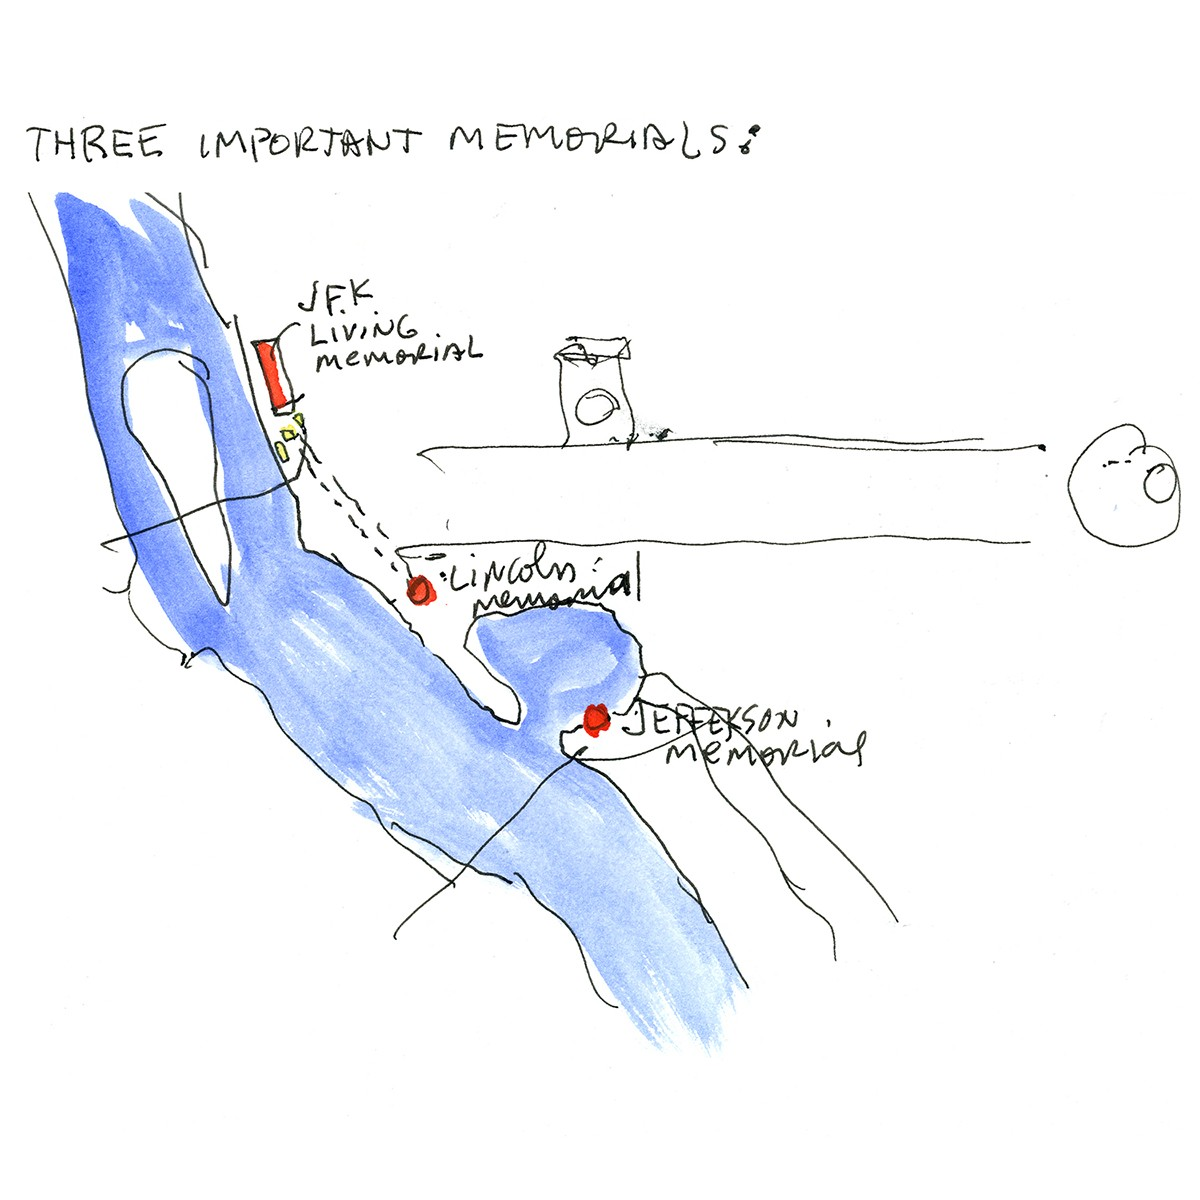 https://stevenholl.sfo2.digitaloceanspaces.com/uploads/projects/project-images/SHA_JFK_watercolor_05_square.jpg